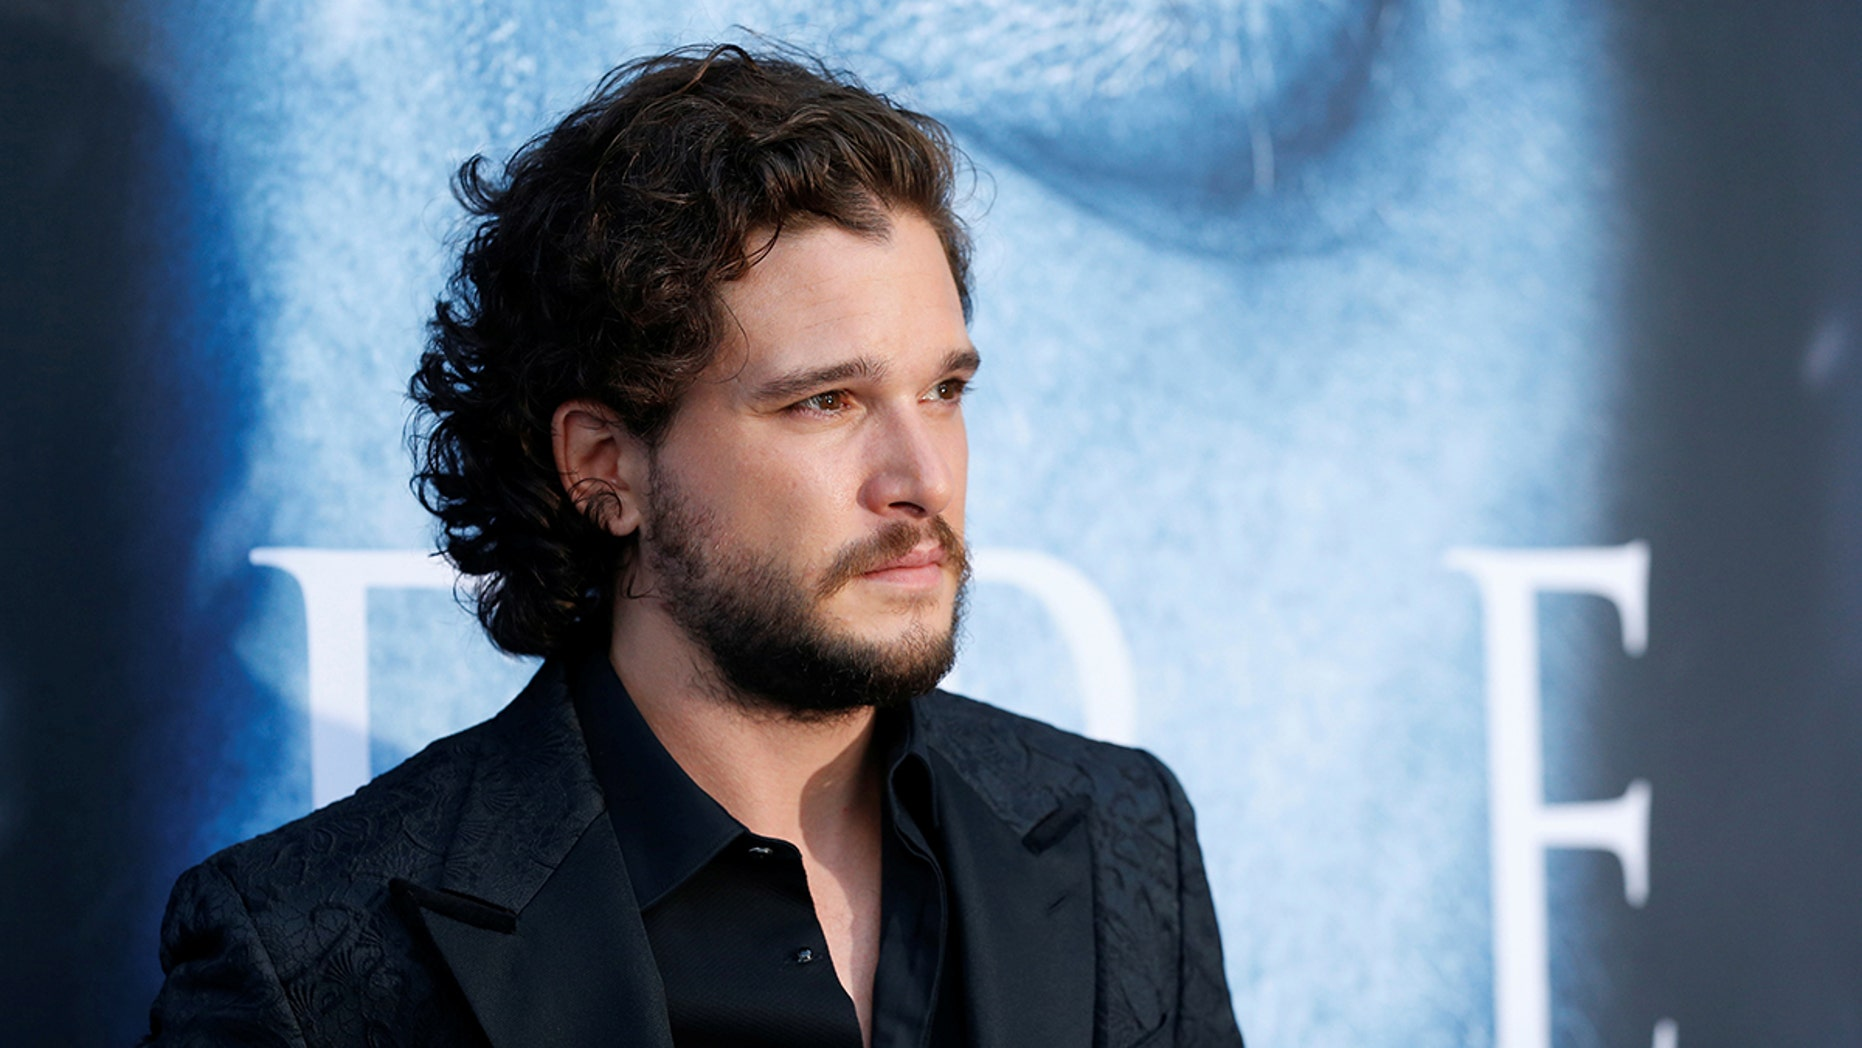 """Cast member Kit Harington poses at a premiere for season 7 of the television series """"Game of Thrones"""" in Los Angeles, California, U.S., July 12, 2017. REUTERS/Mario Anzuoni - RC173FE9F510"""